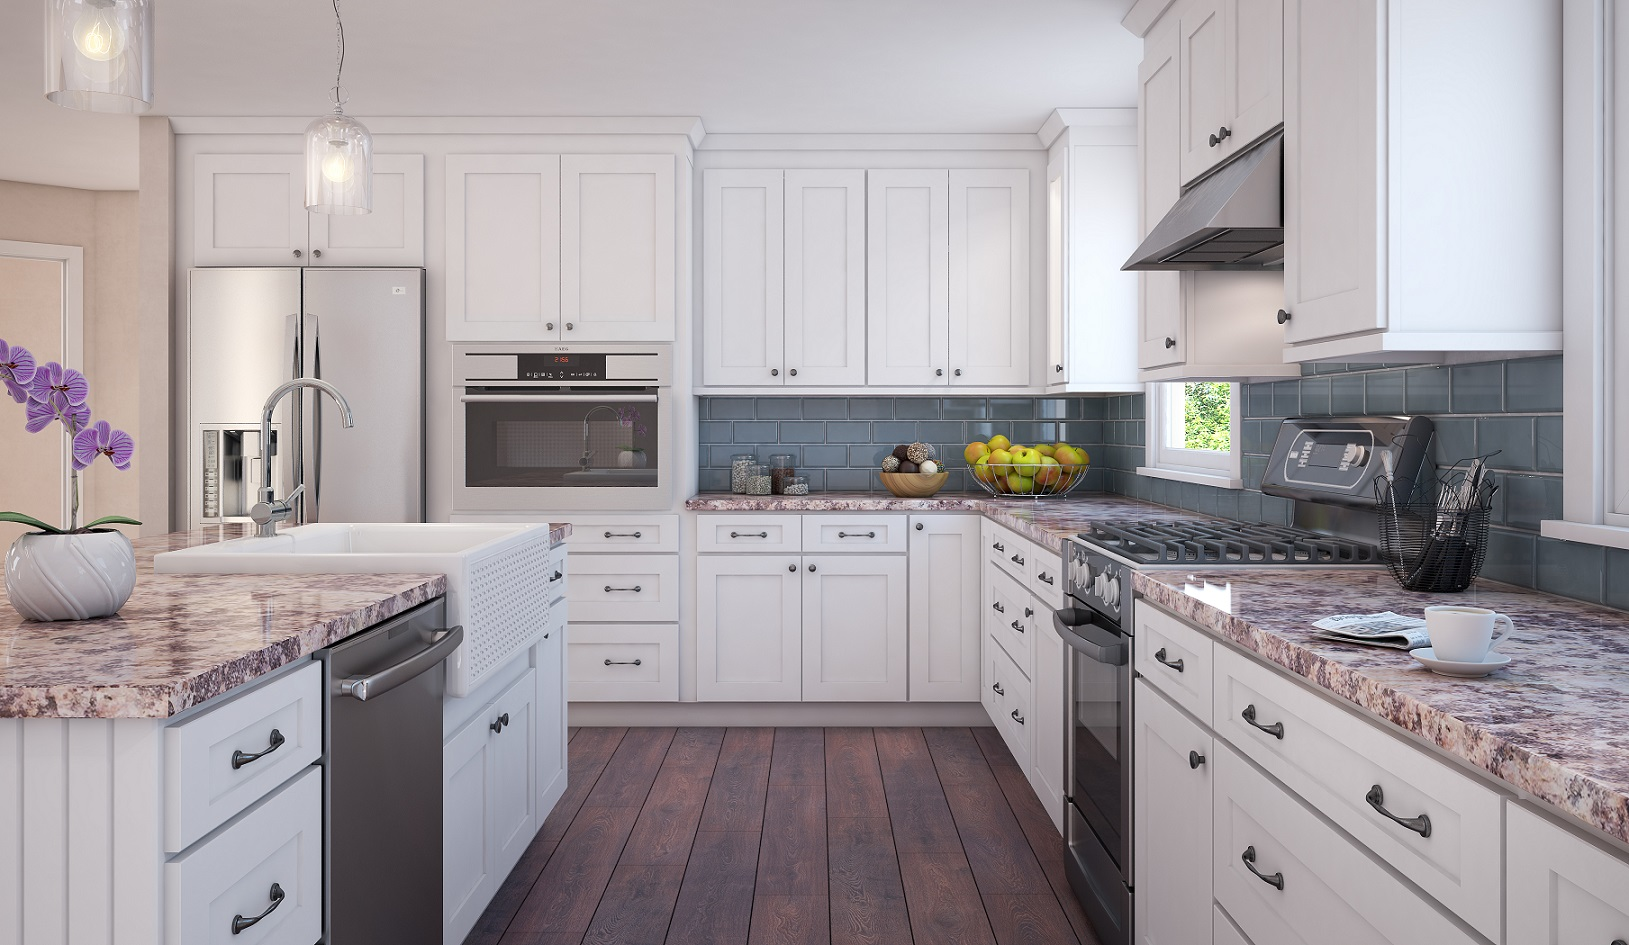 Kitchen Cabinets - Tips For Finding And Buying The Right ...